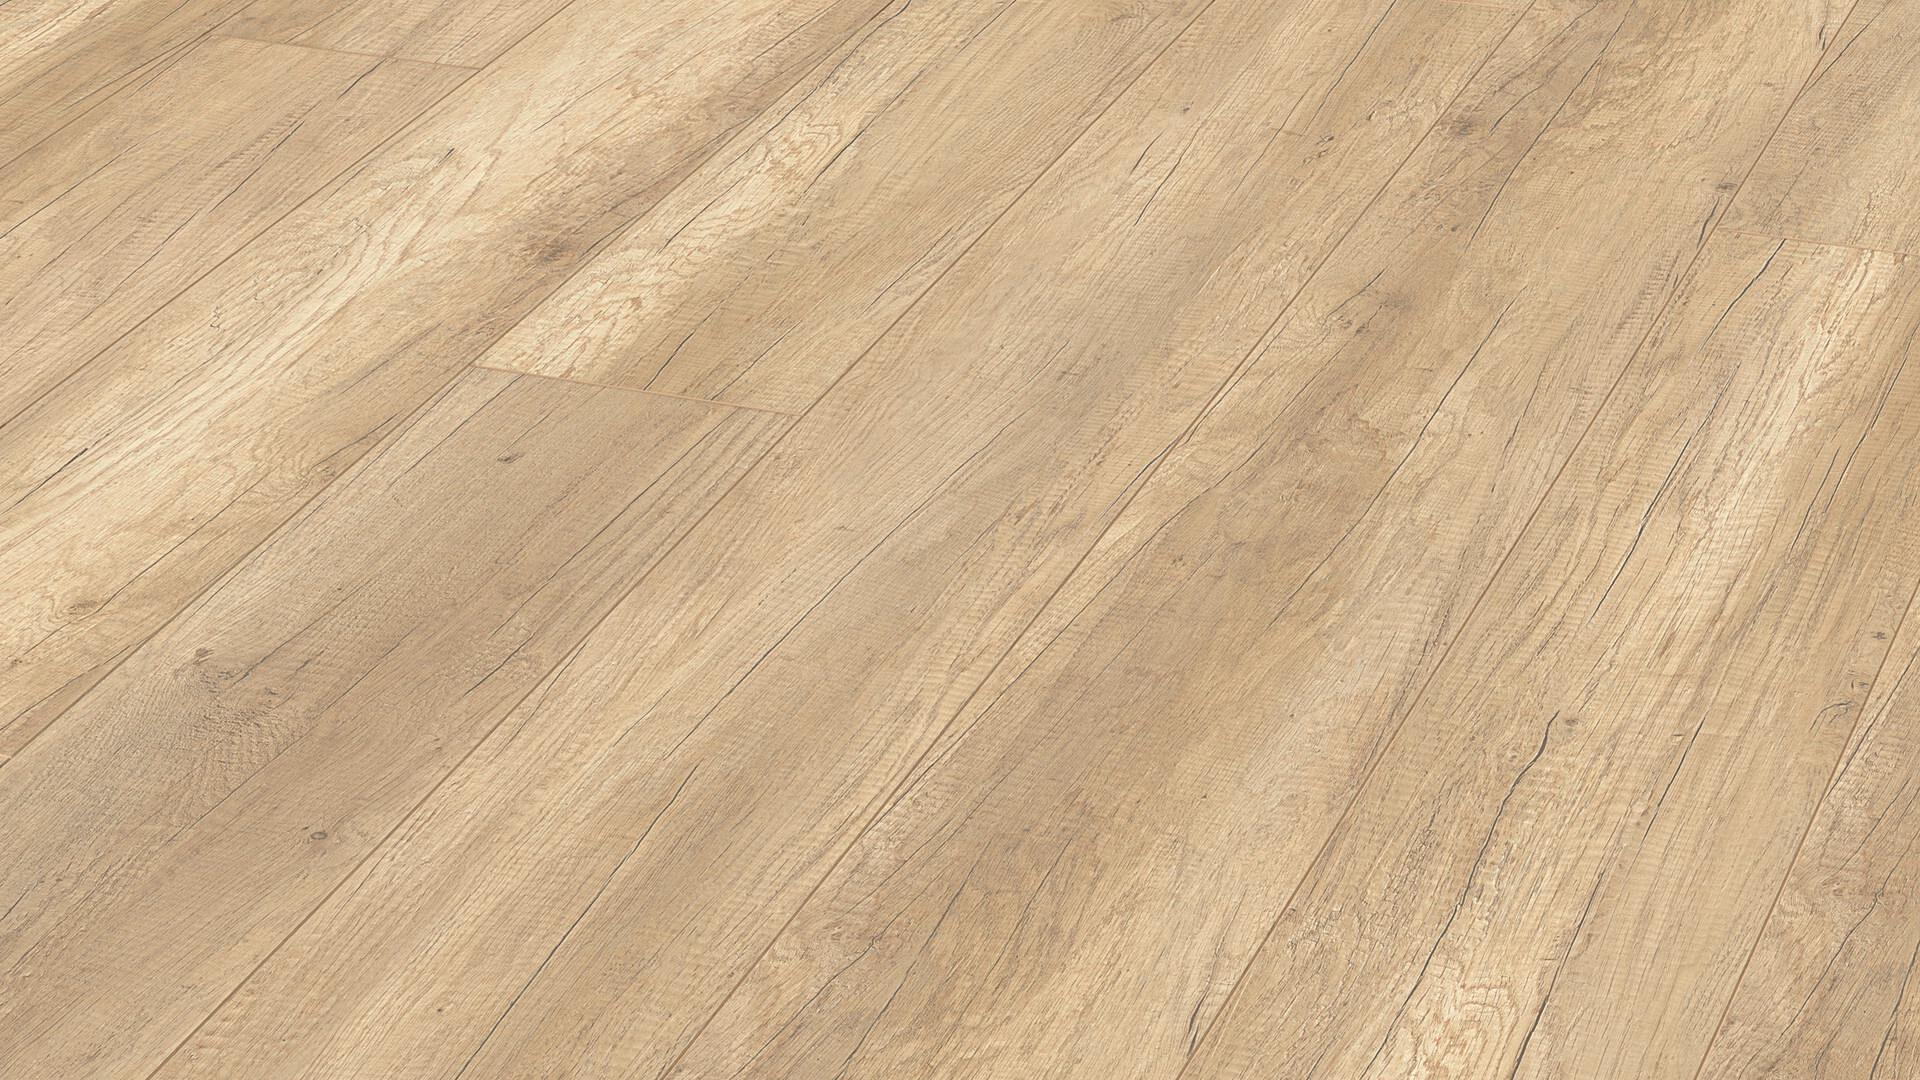 Laminate flooring MeisterDesign. laminate LL 150 Light boathouse oak 6259